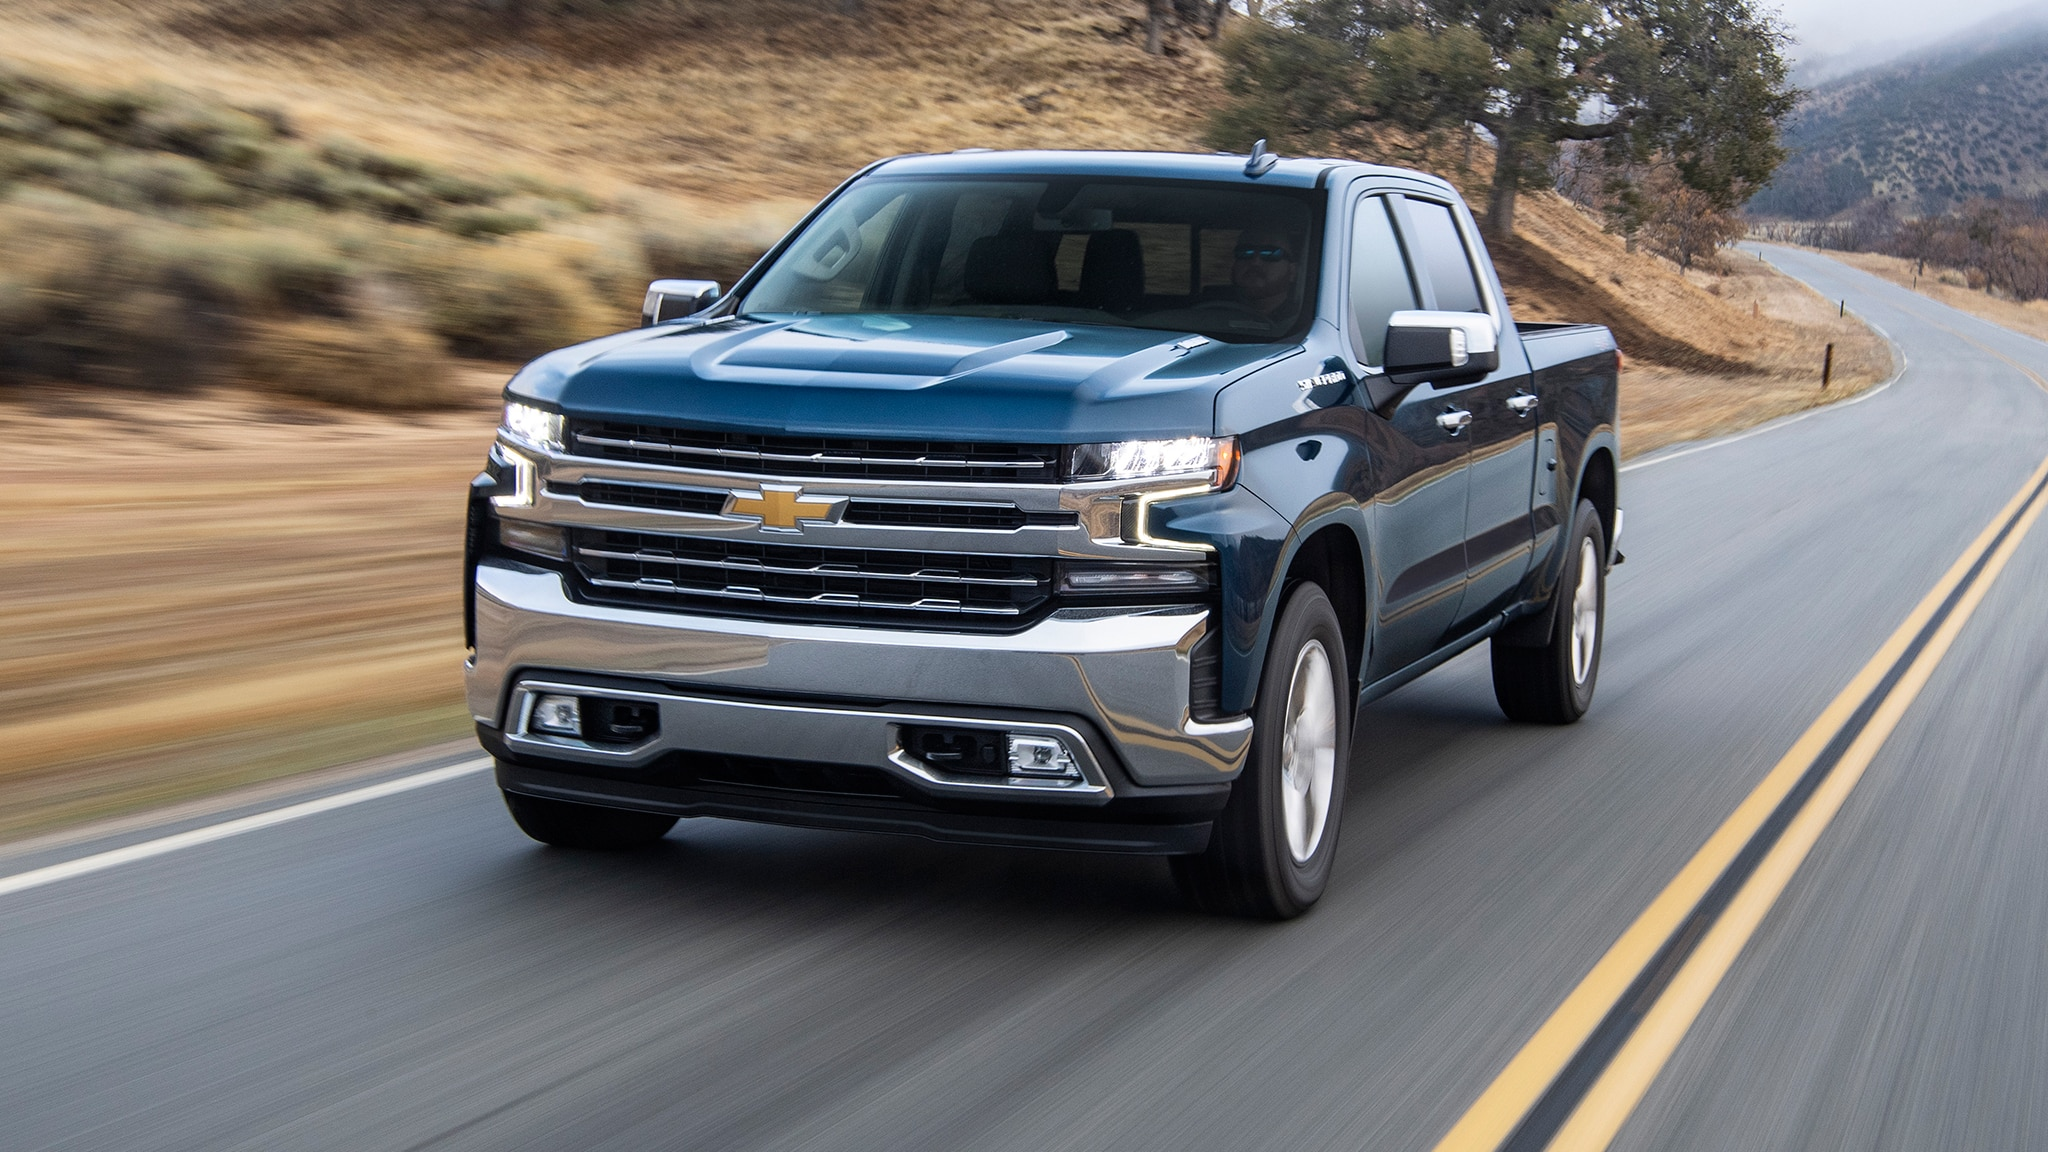 The 2020 Chevrolet Silverado Diesel Gets Big Highway MPG ...